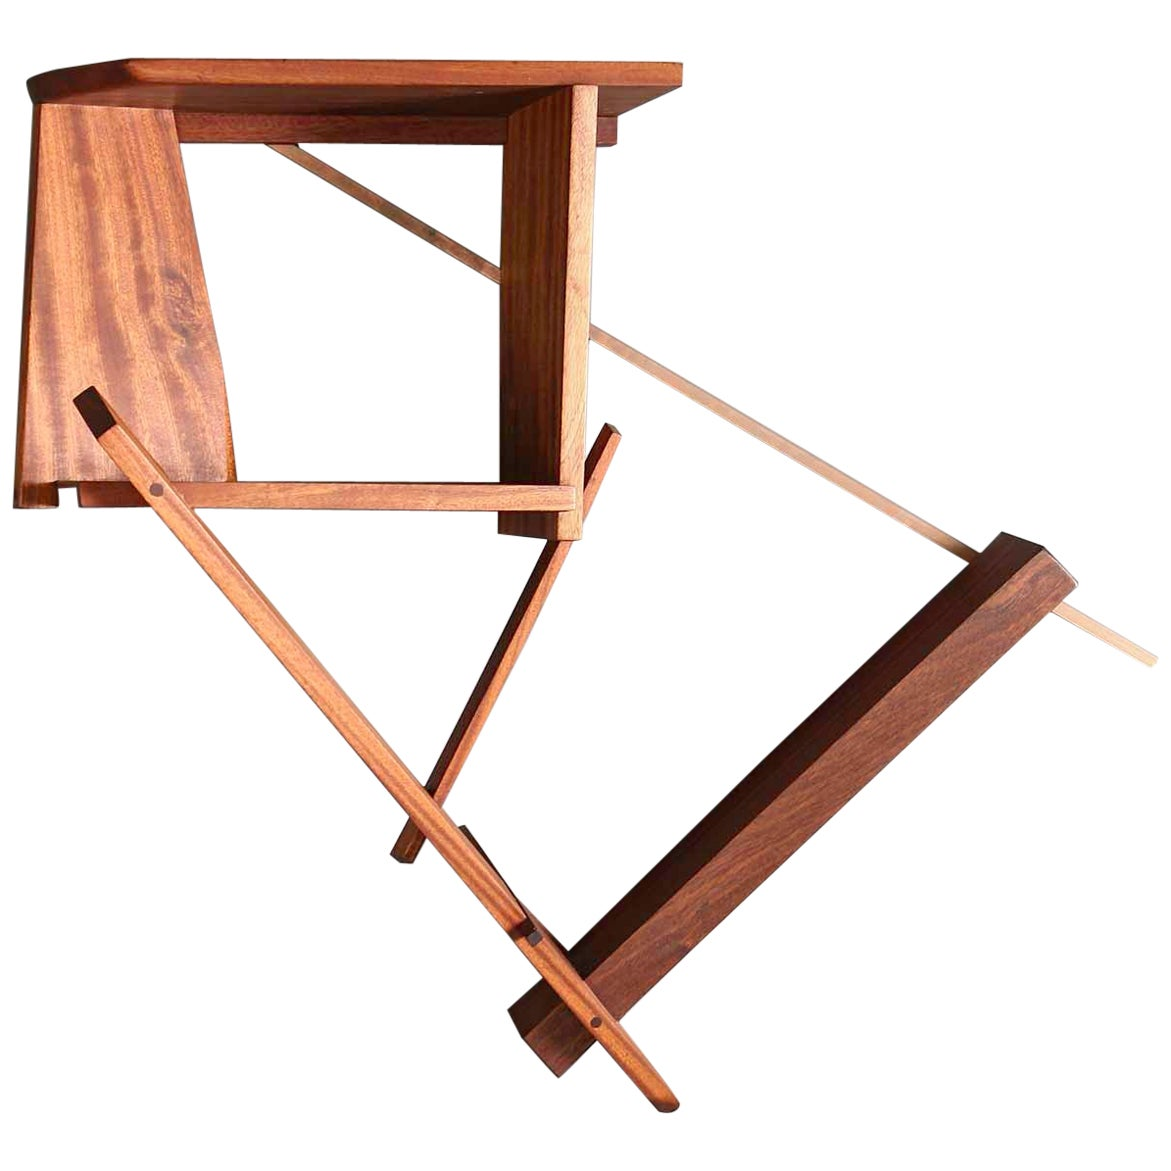 """Unique, One-of-a-Kind Mahogany and Copper """"Boyle Height Shelf"""""""